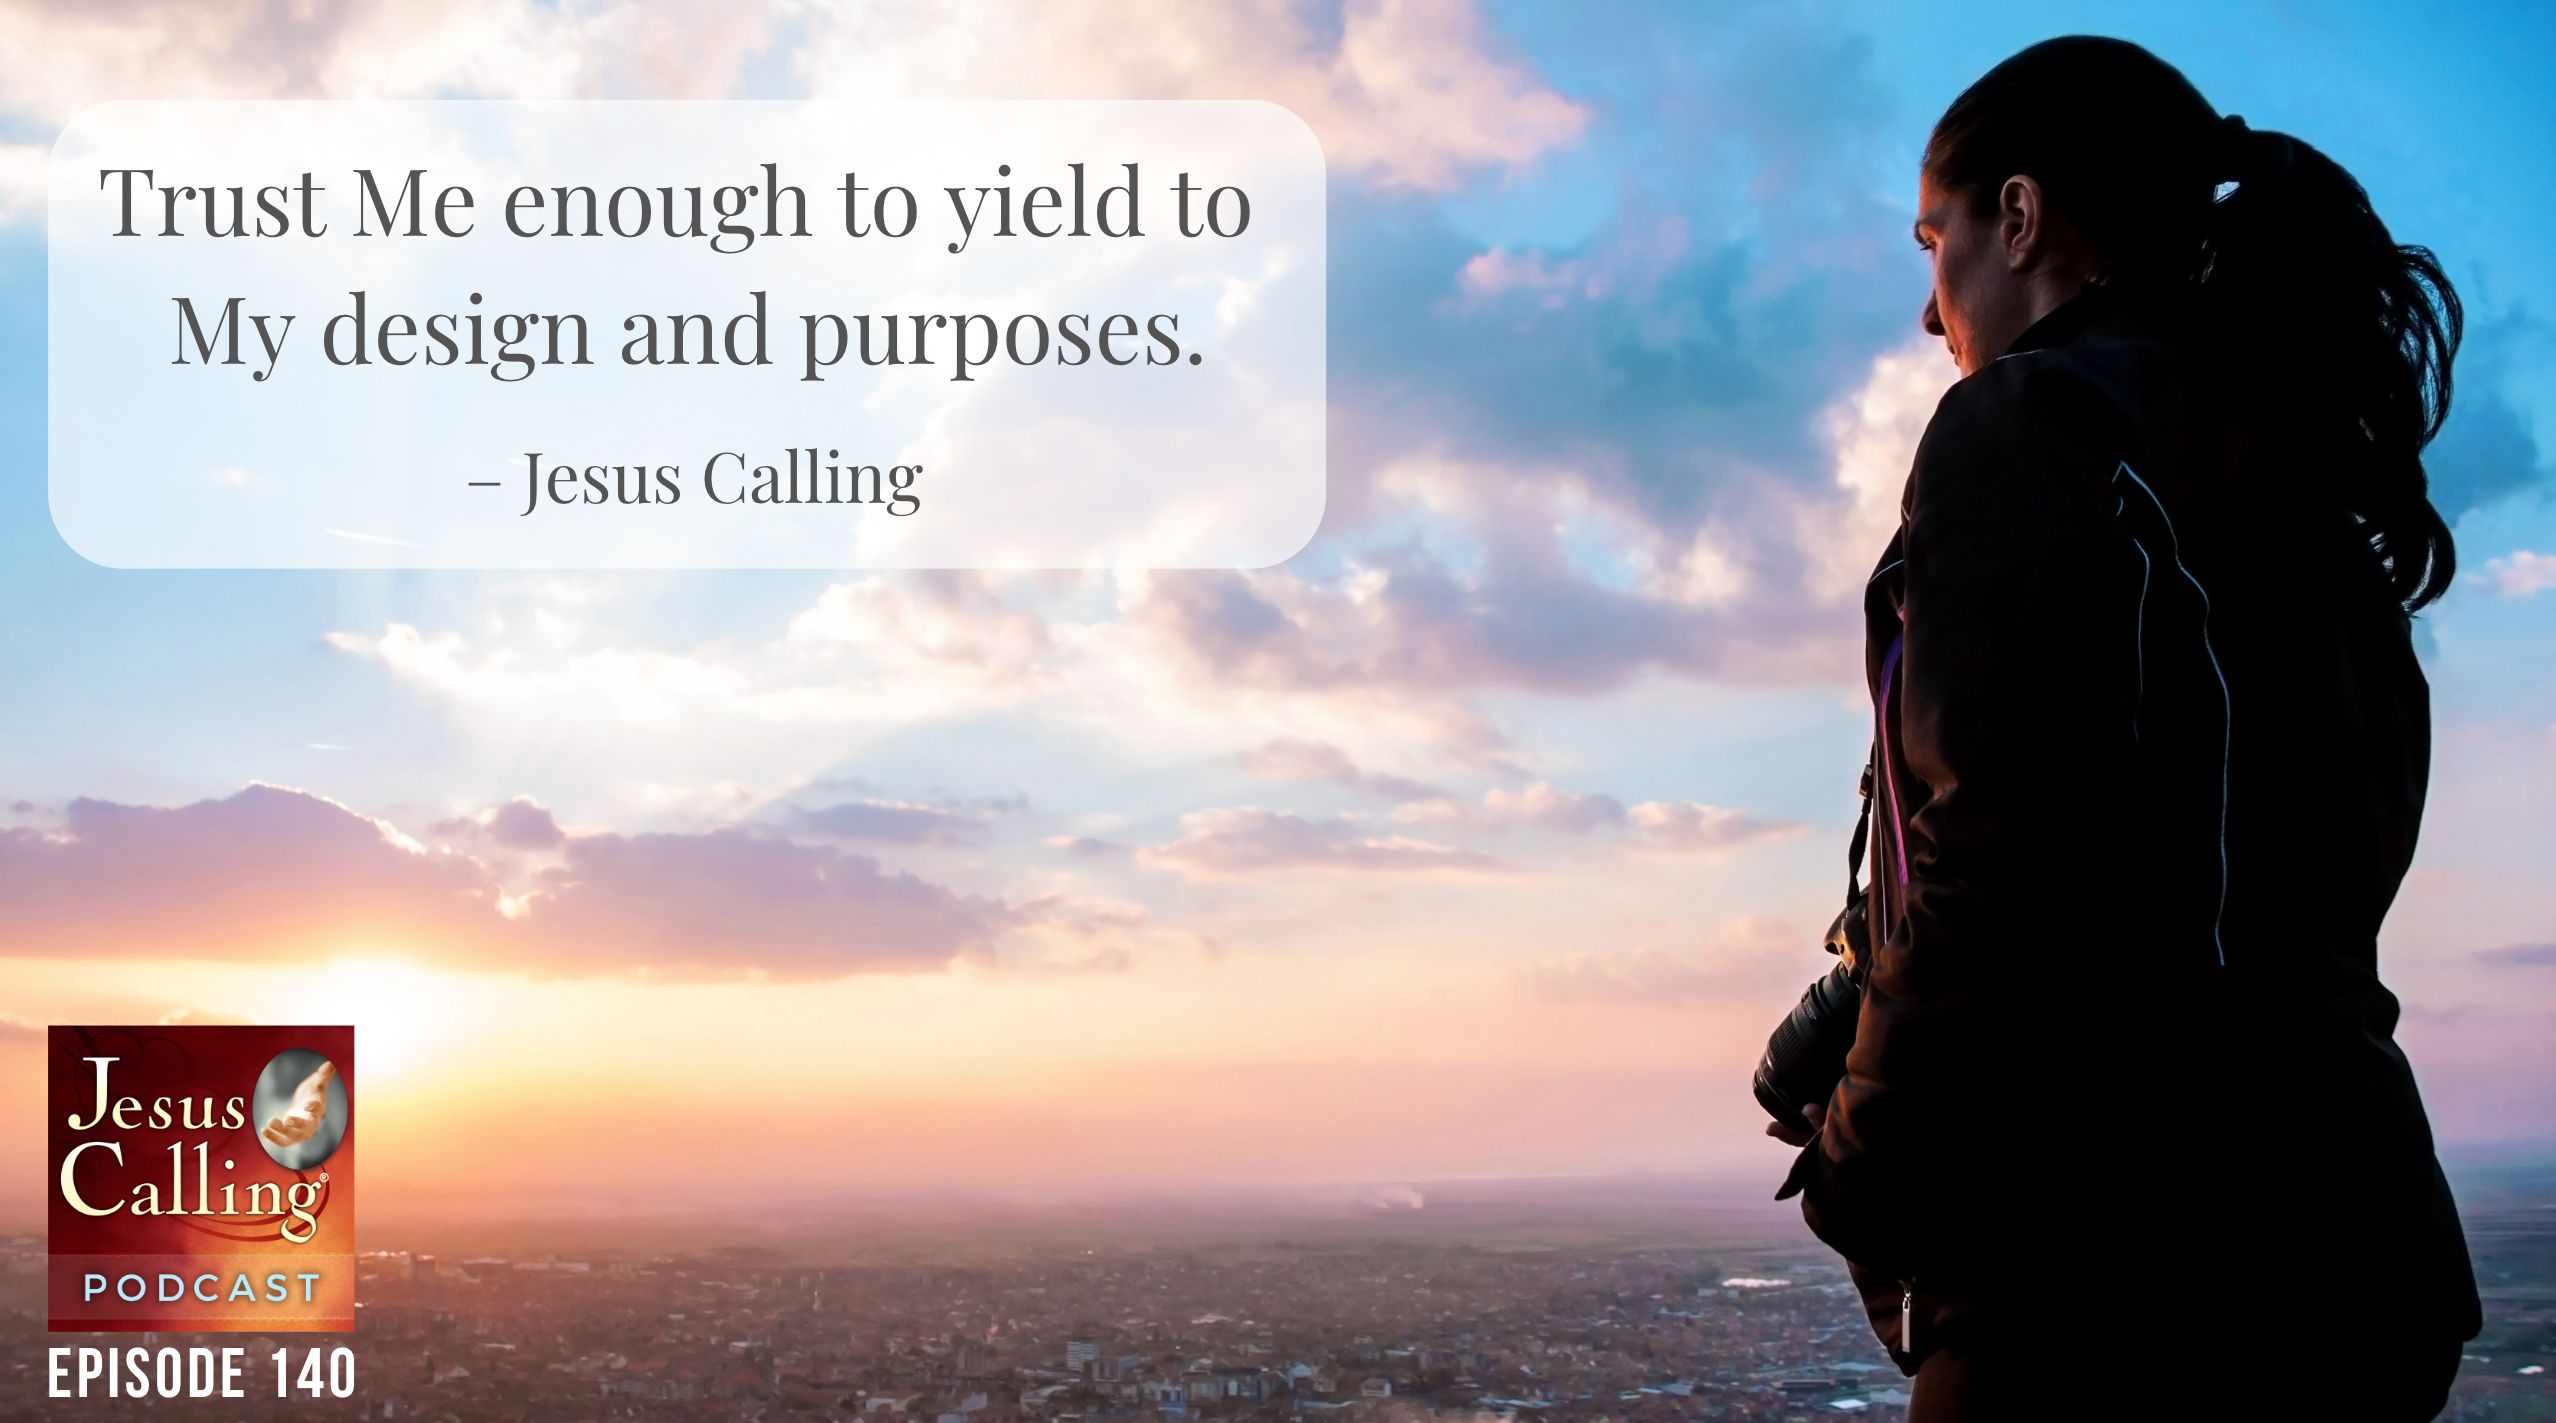 Jesus Calling Podcast #140 featuring Jeremy Cowart & Elisabeth Hasselbeck